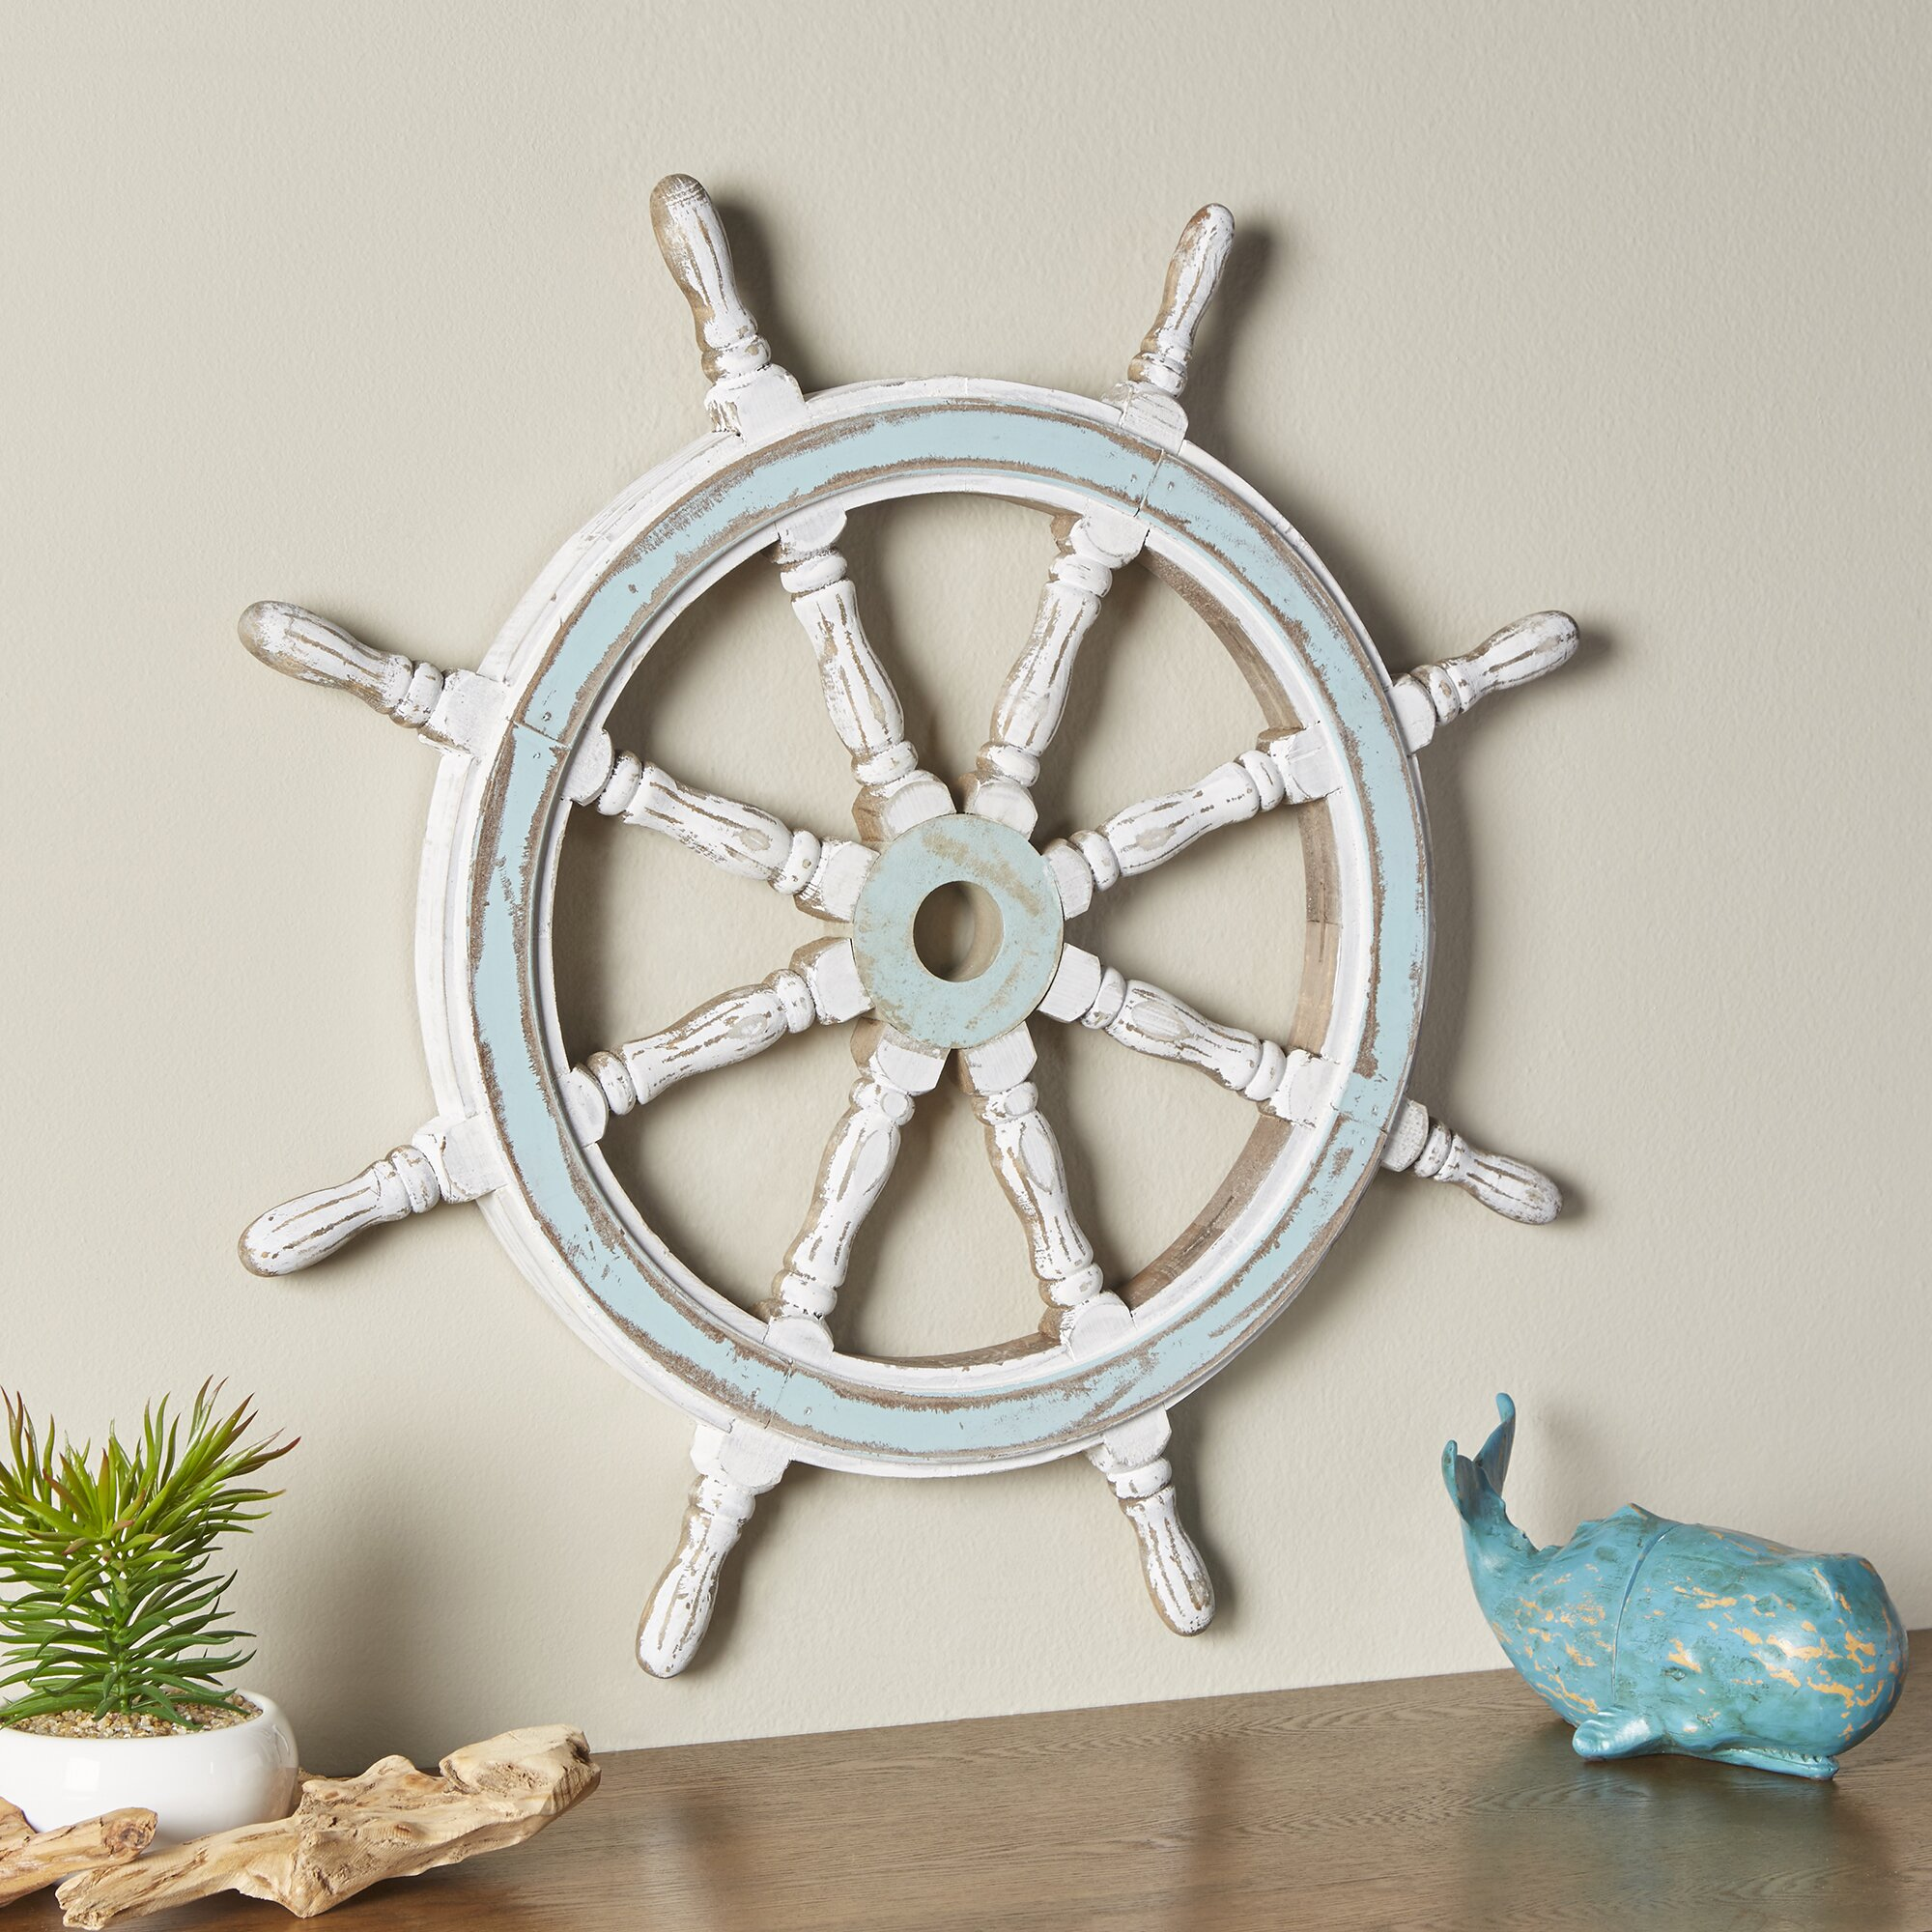 Ship wheel wall decor images home wall decoration ideas ship wheel decor instadecor ship wheel decor amipublicfo images amipublicfo Images